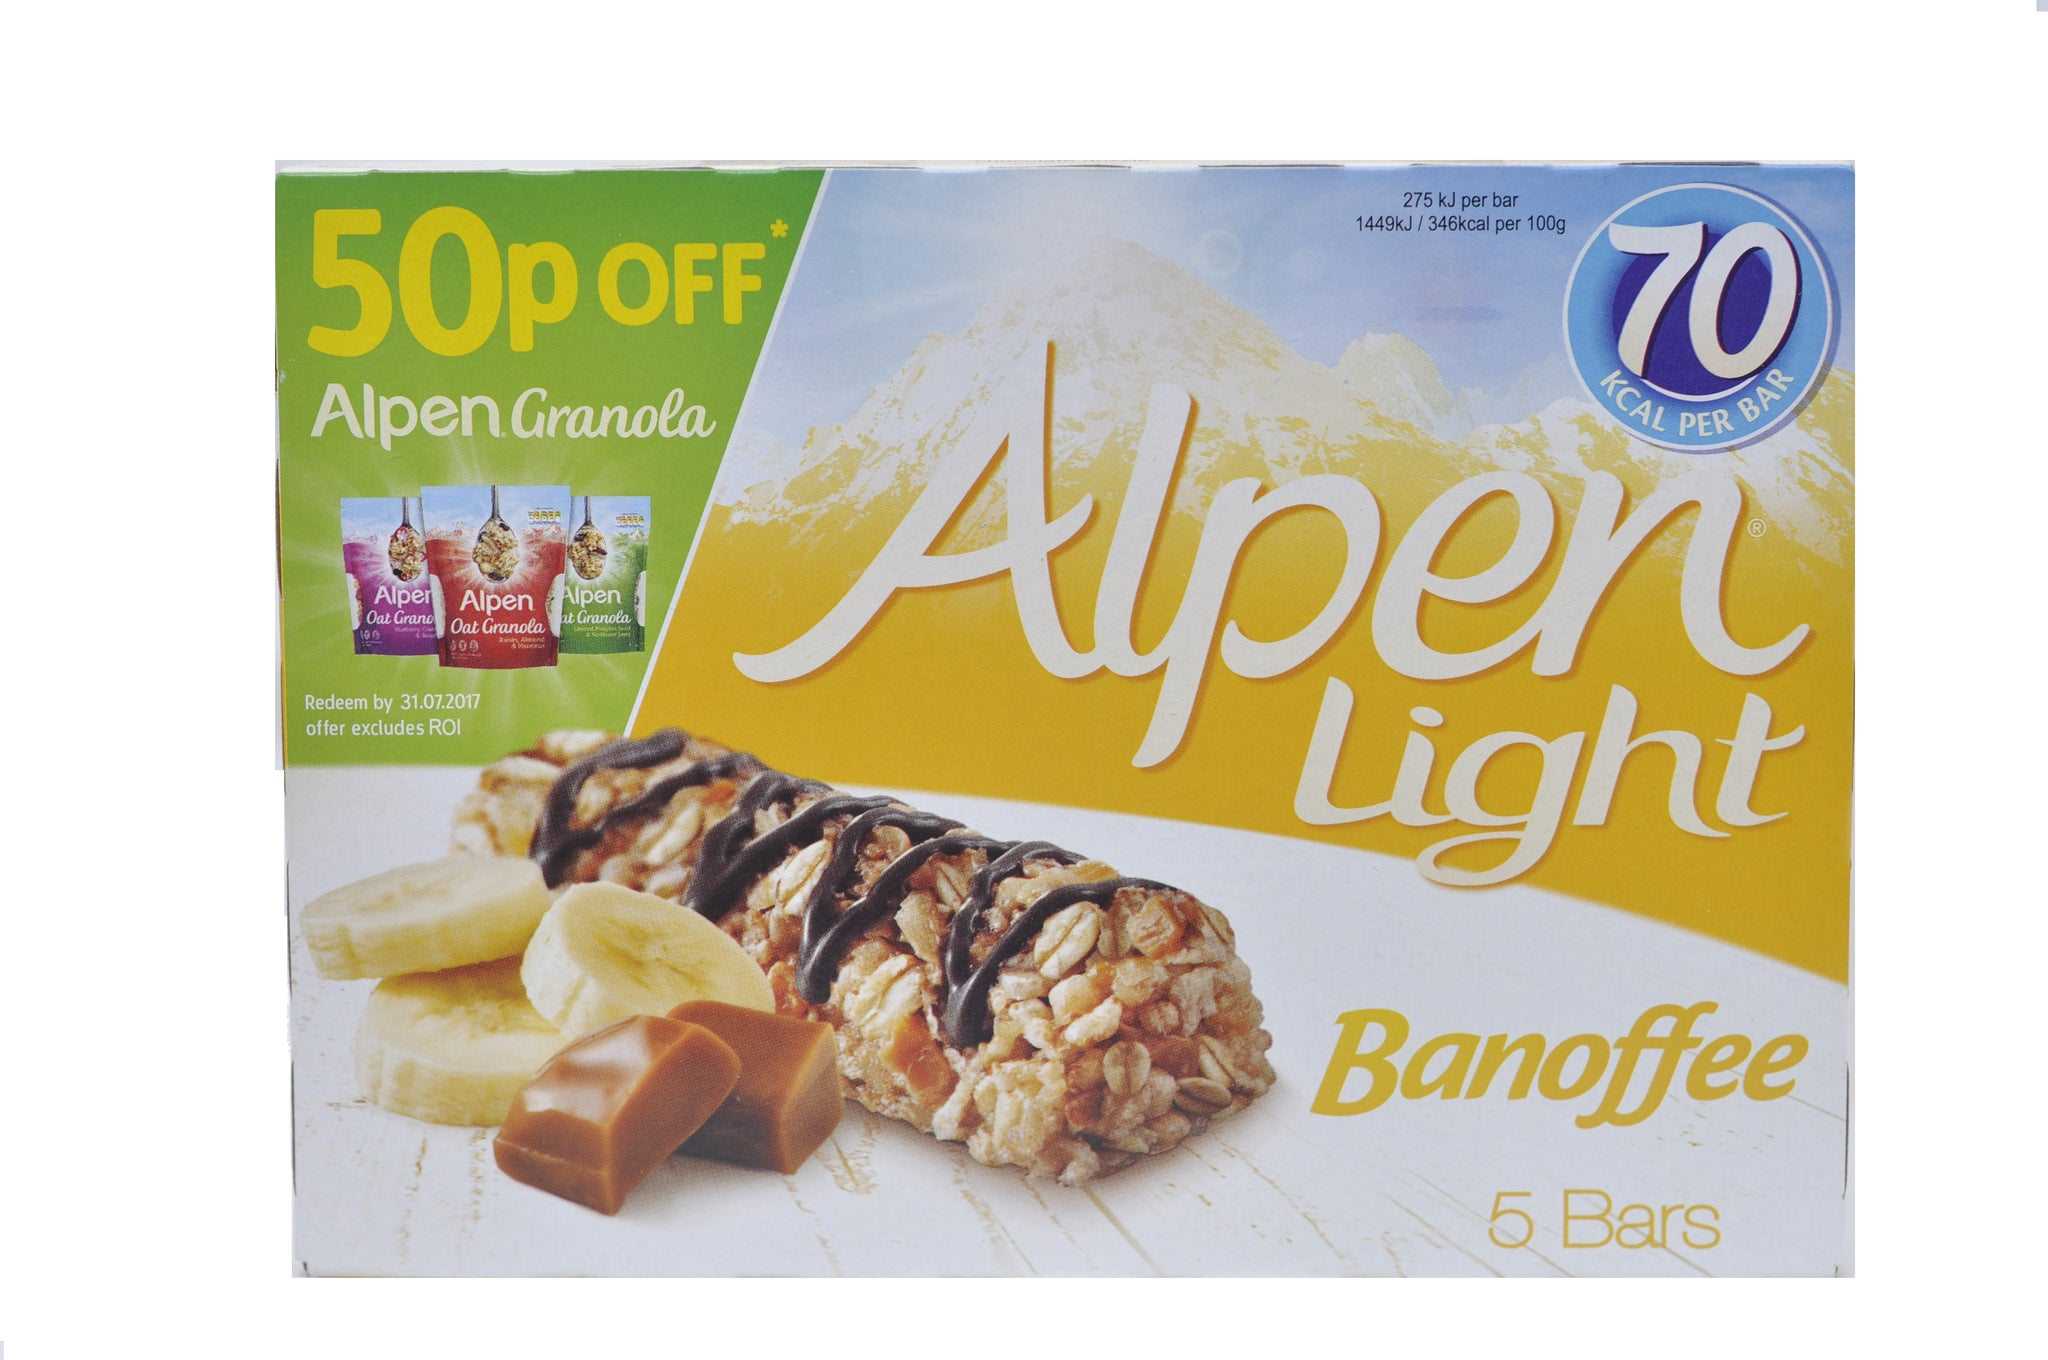 Alpen light banoffee bars snackschaos alpen light banoffee bars aloadofball